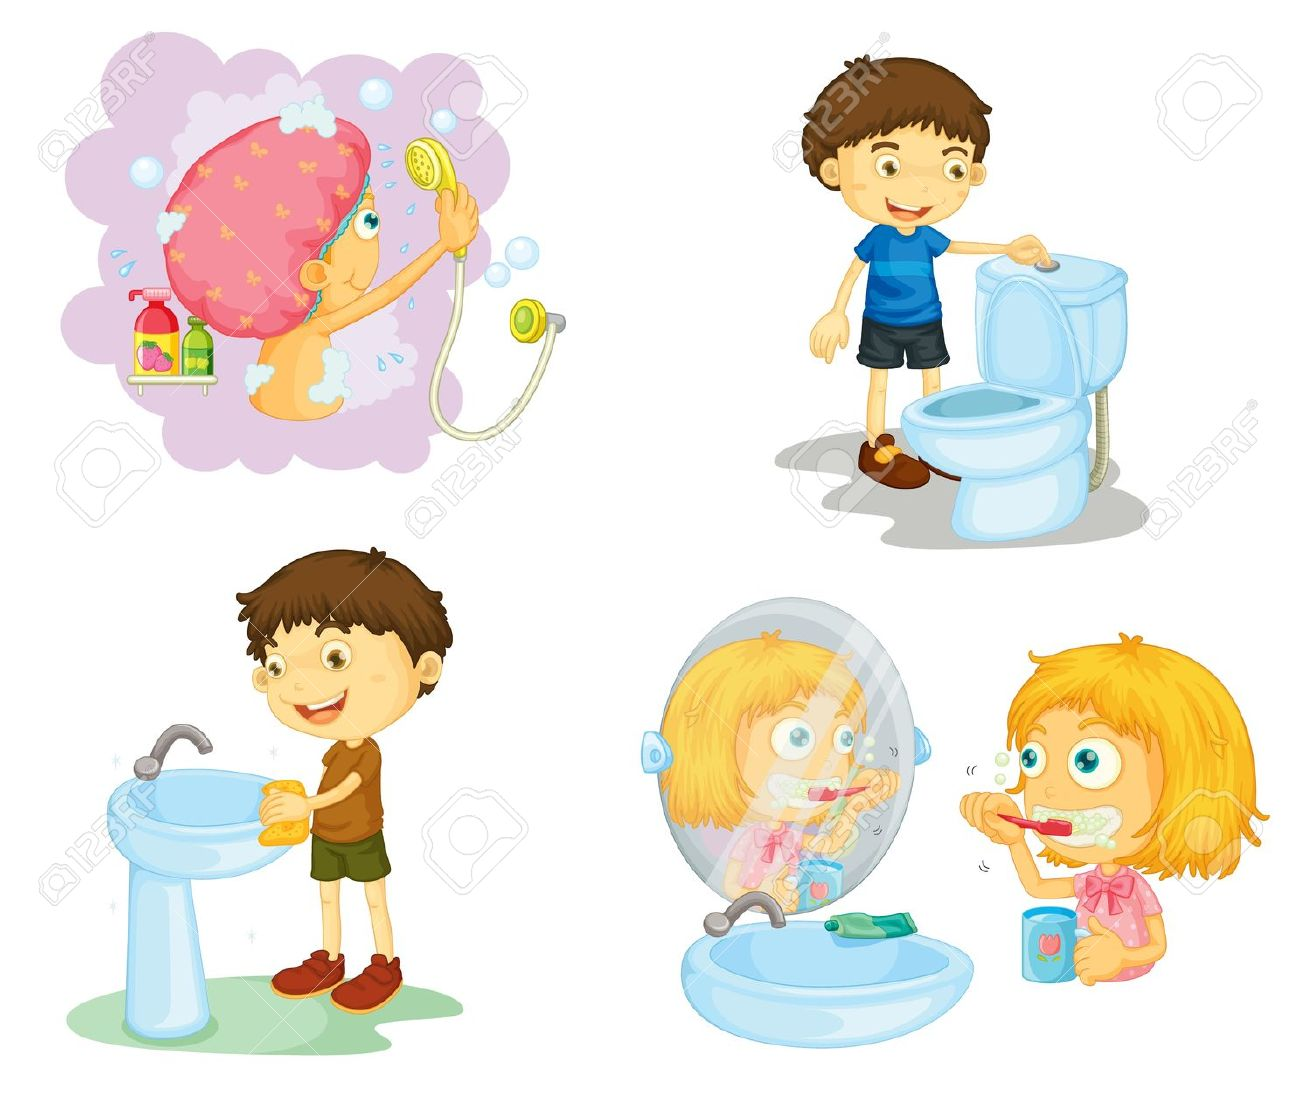 Cleaning with kids clipart jpg royalty free stock Kids cleaning bathroom clipart - ClipartFest jpg royalty free stock